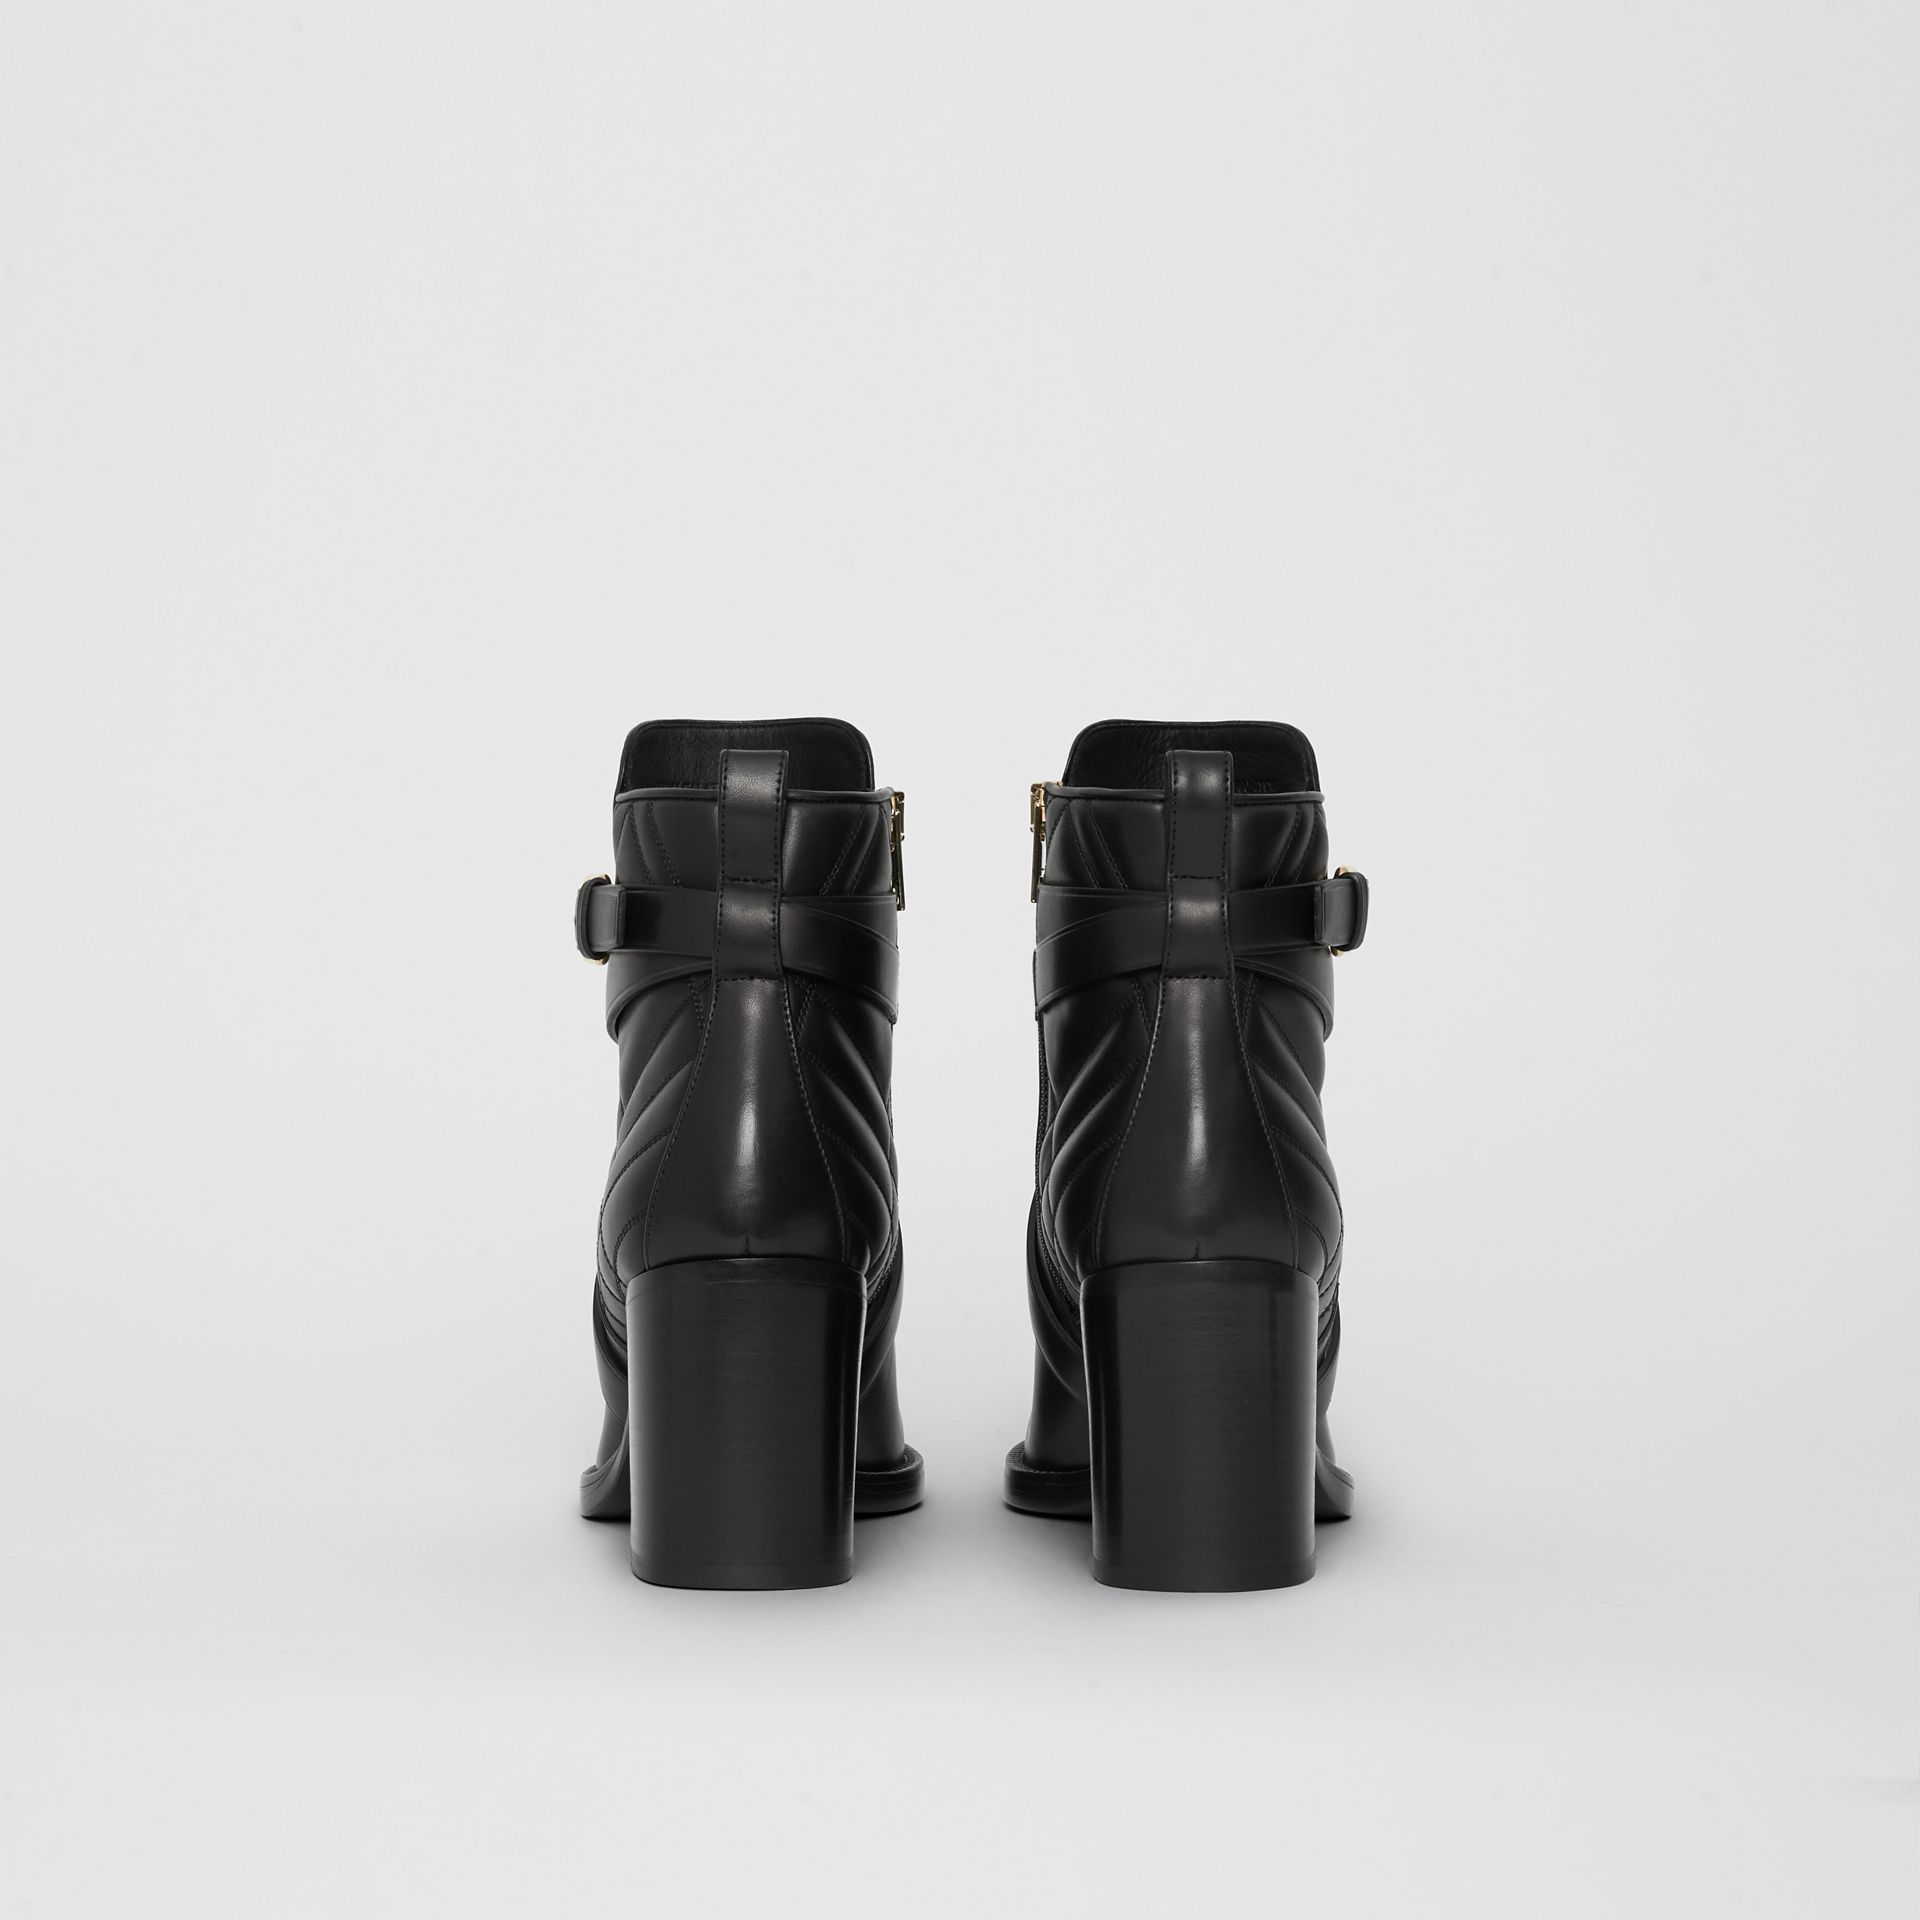 Bottines en cuir matelassé avec sangle (Noir) - Femme | Burberry Canada - photo de la galerie 4